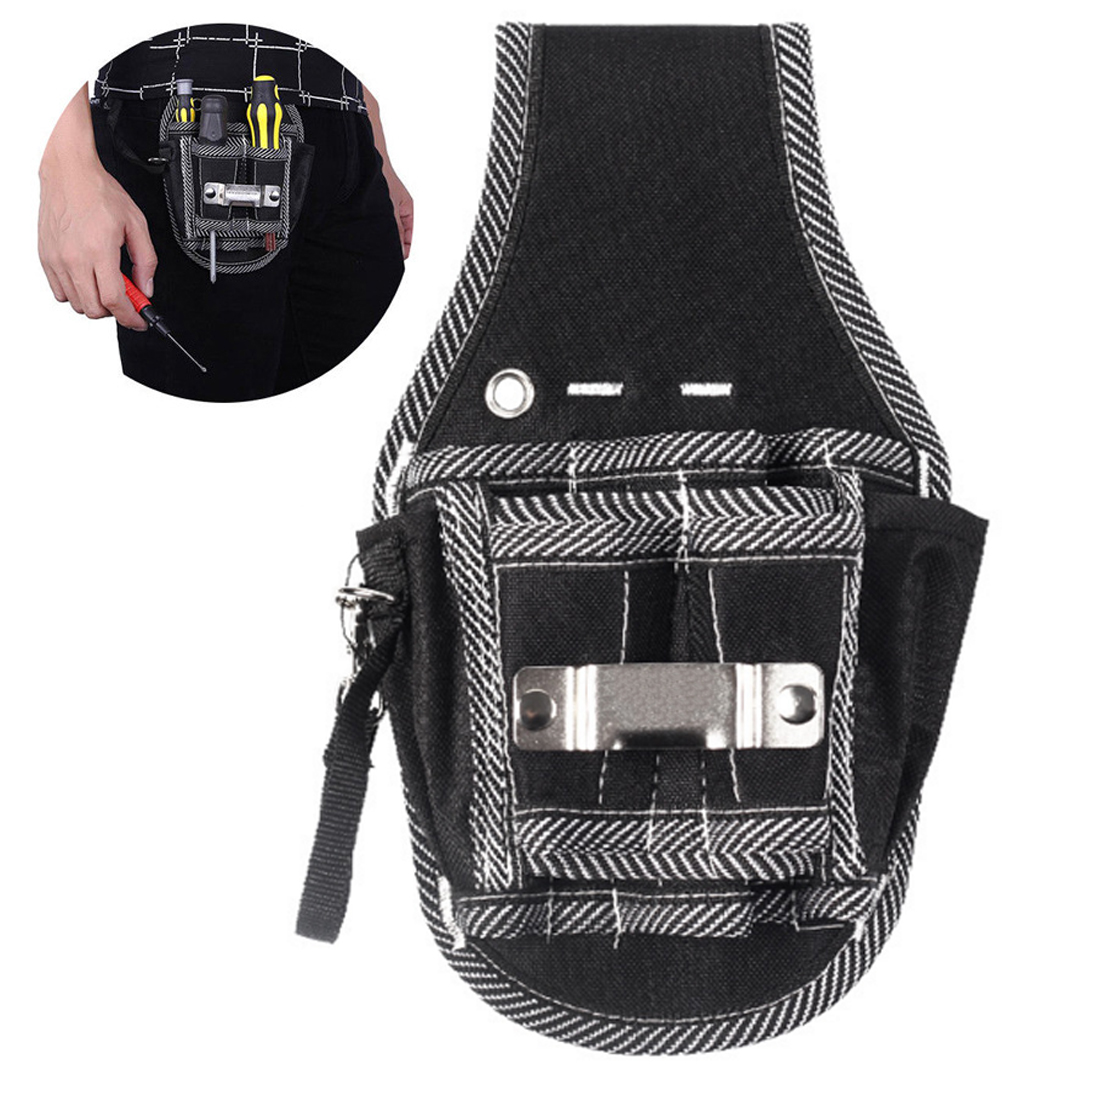 9 In 1 Screwdriver Utility Kit Holder 600D Nylon Fabric Tool Bag Electrician Waist Pocket Tool Belt Pouch Bag